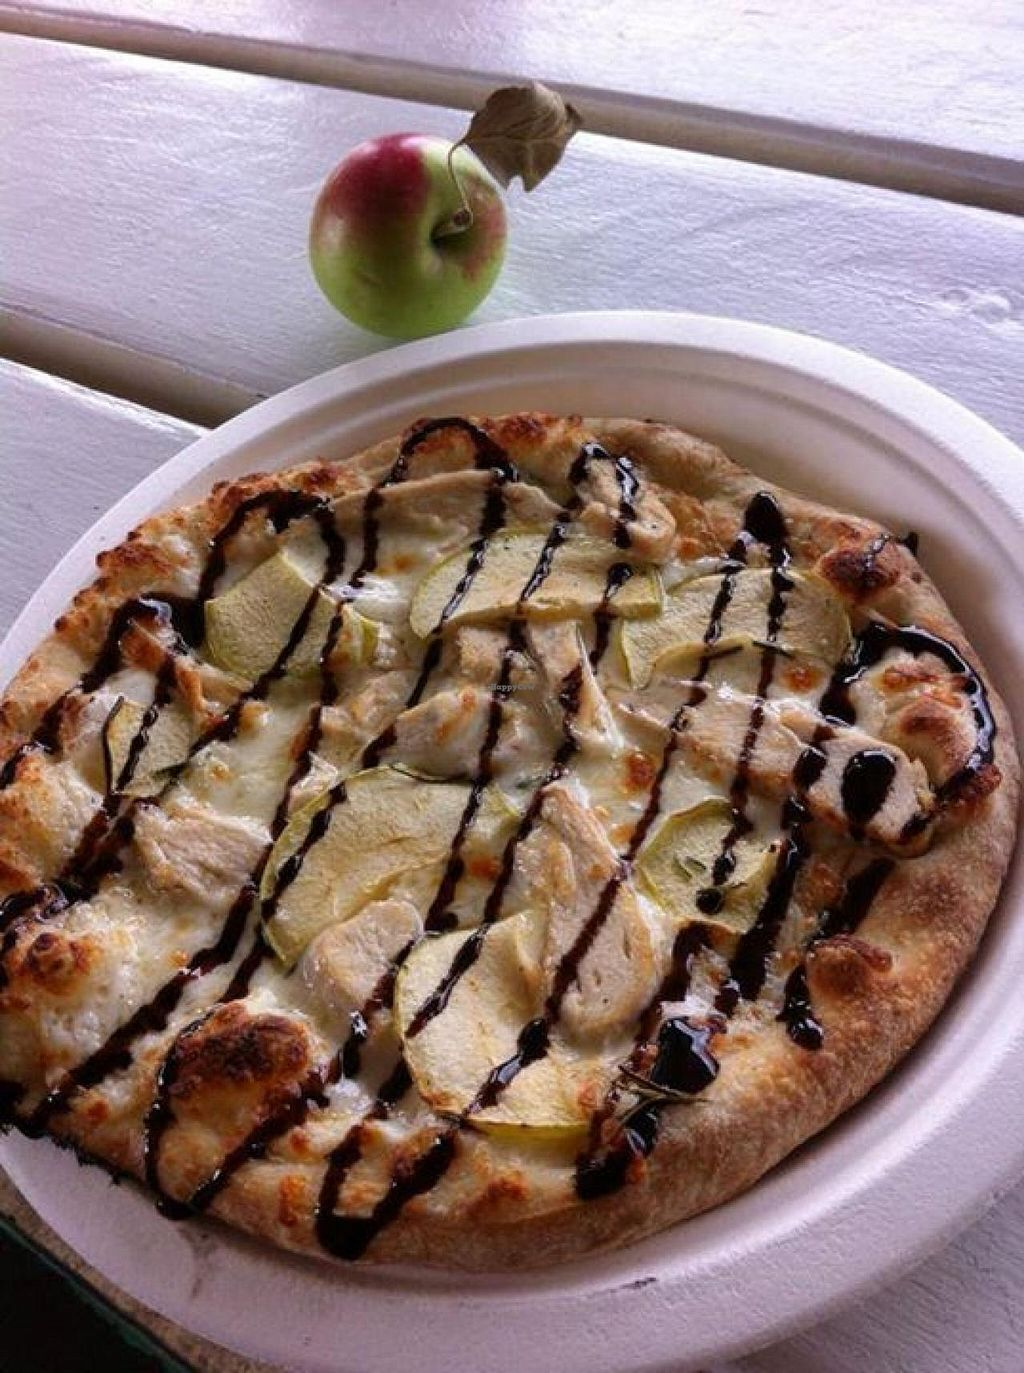 """Photo of Pizza Carrello  by <a href=""""/members/profile/community"""">community</a> <br/>apple and banana pizza  <br/> October 6, 2014  - <a href='/contact/abuse/image/51924/82306'>Report</a>"""